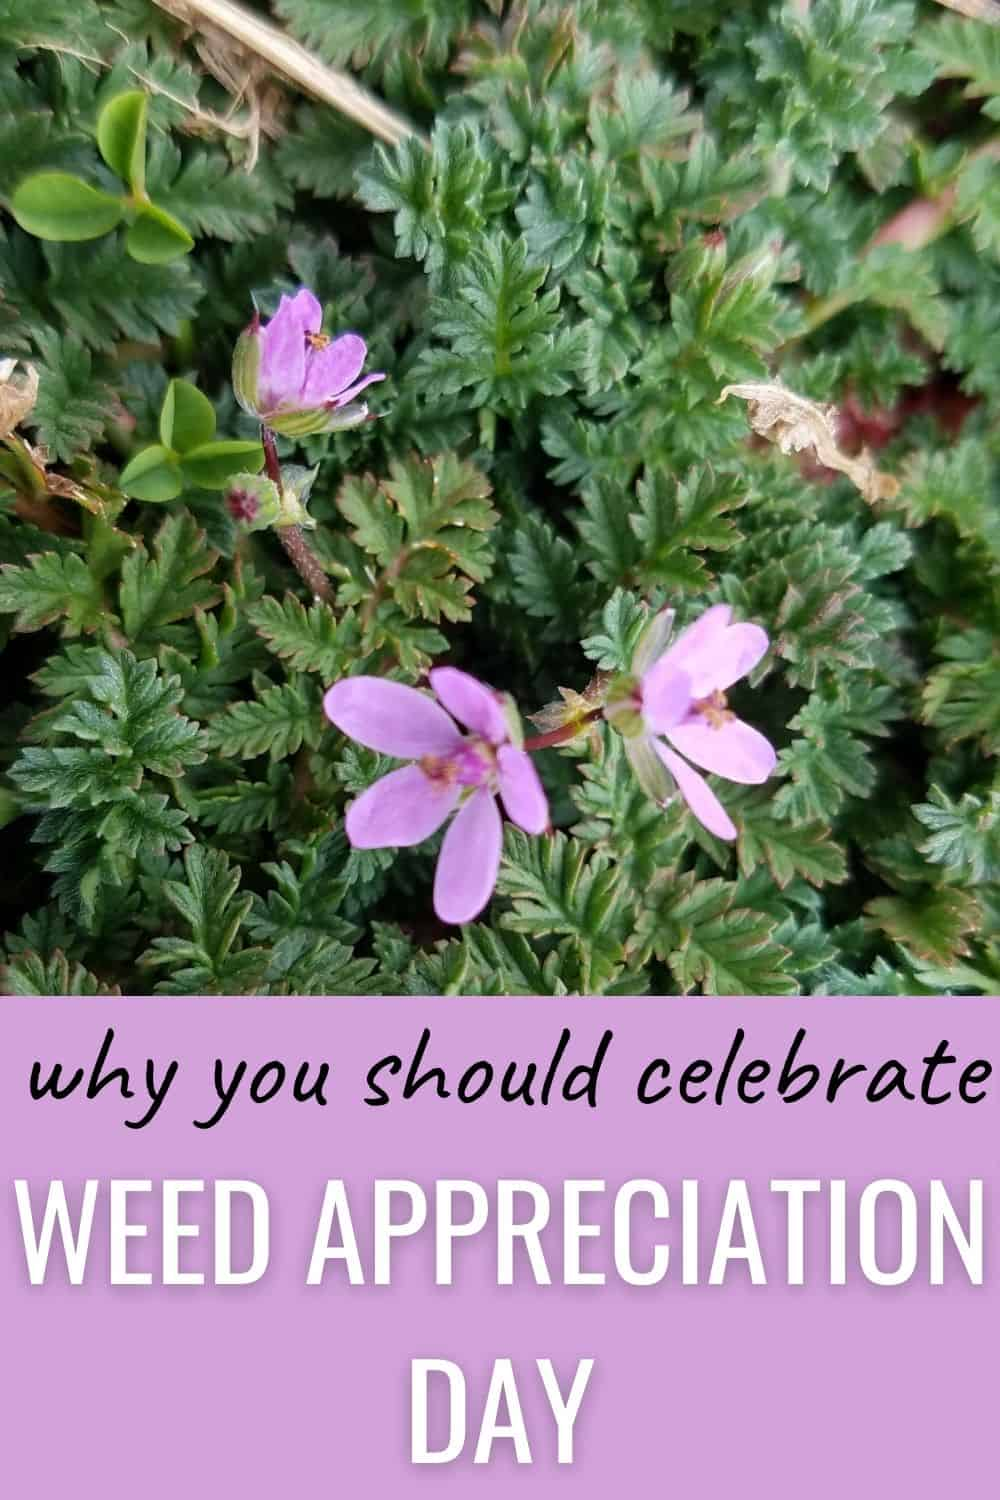 Why should you celebrate weed appreciation day?